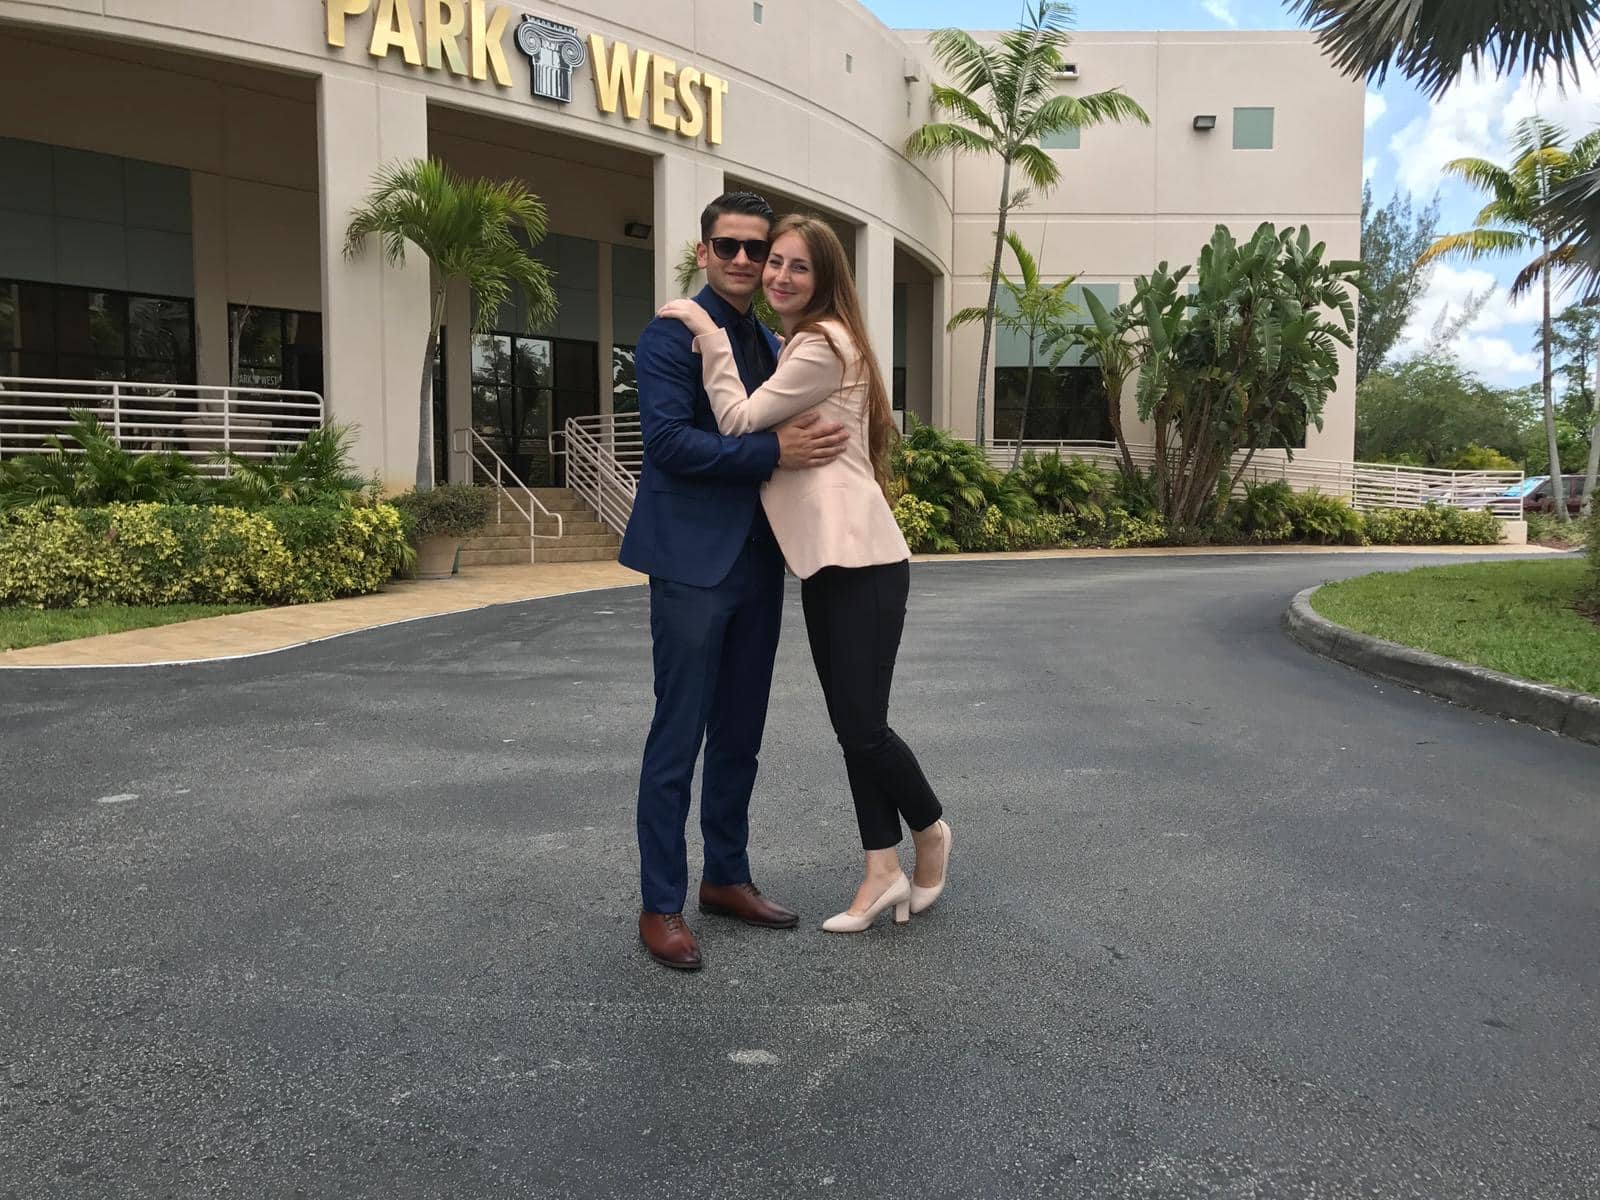 Park West Gallery Auctioneers Sergiu Miron and Alexandra Dima in front of Park West's Miami Lakes location